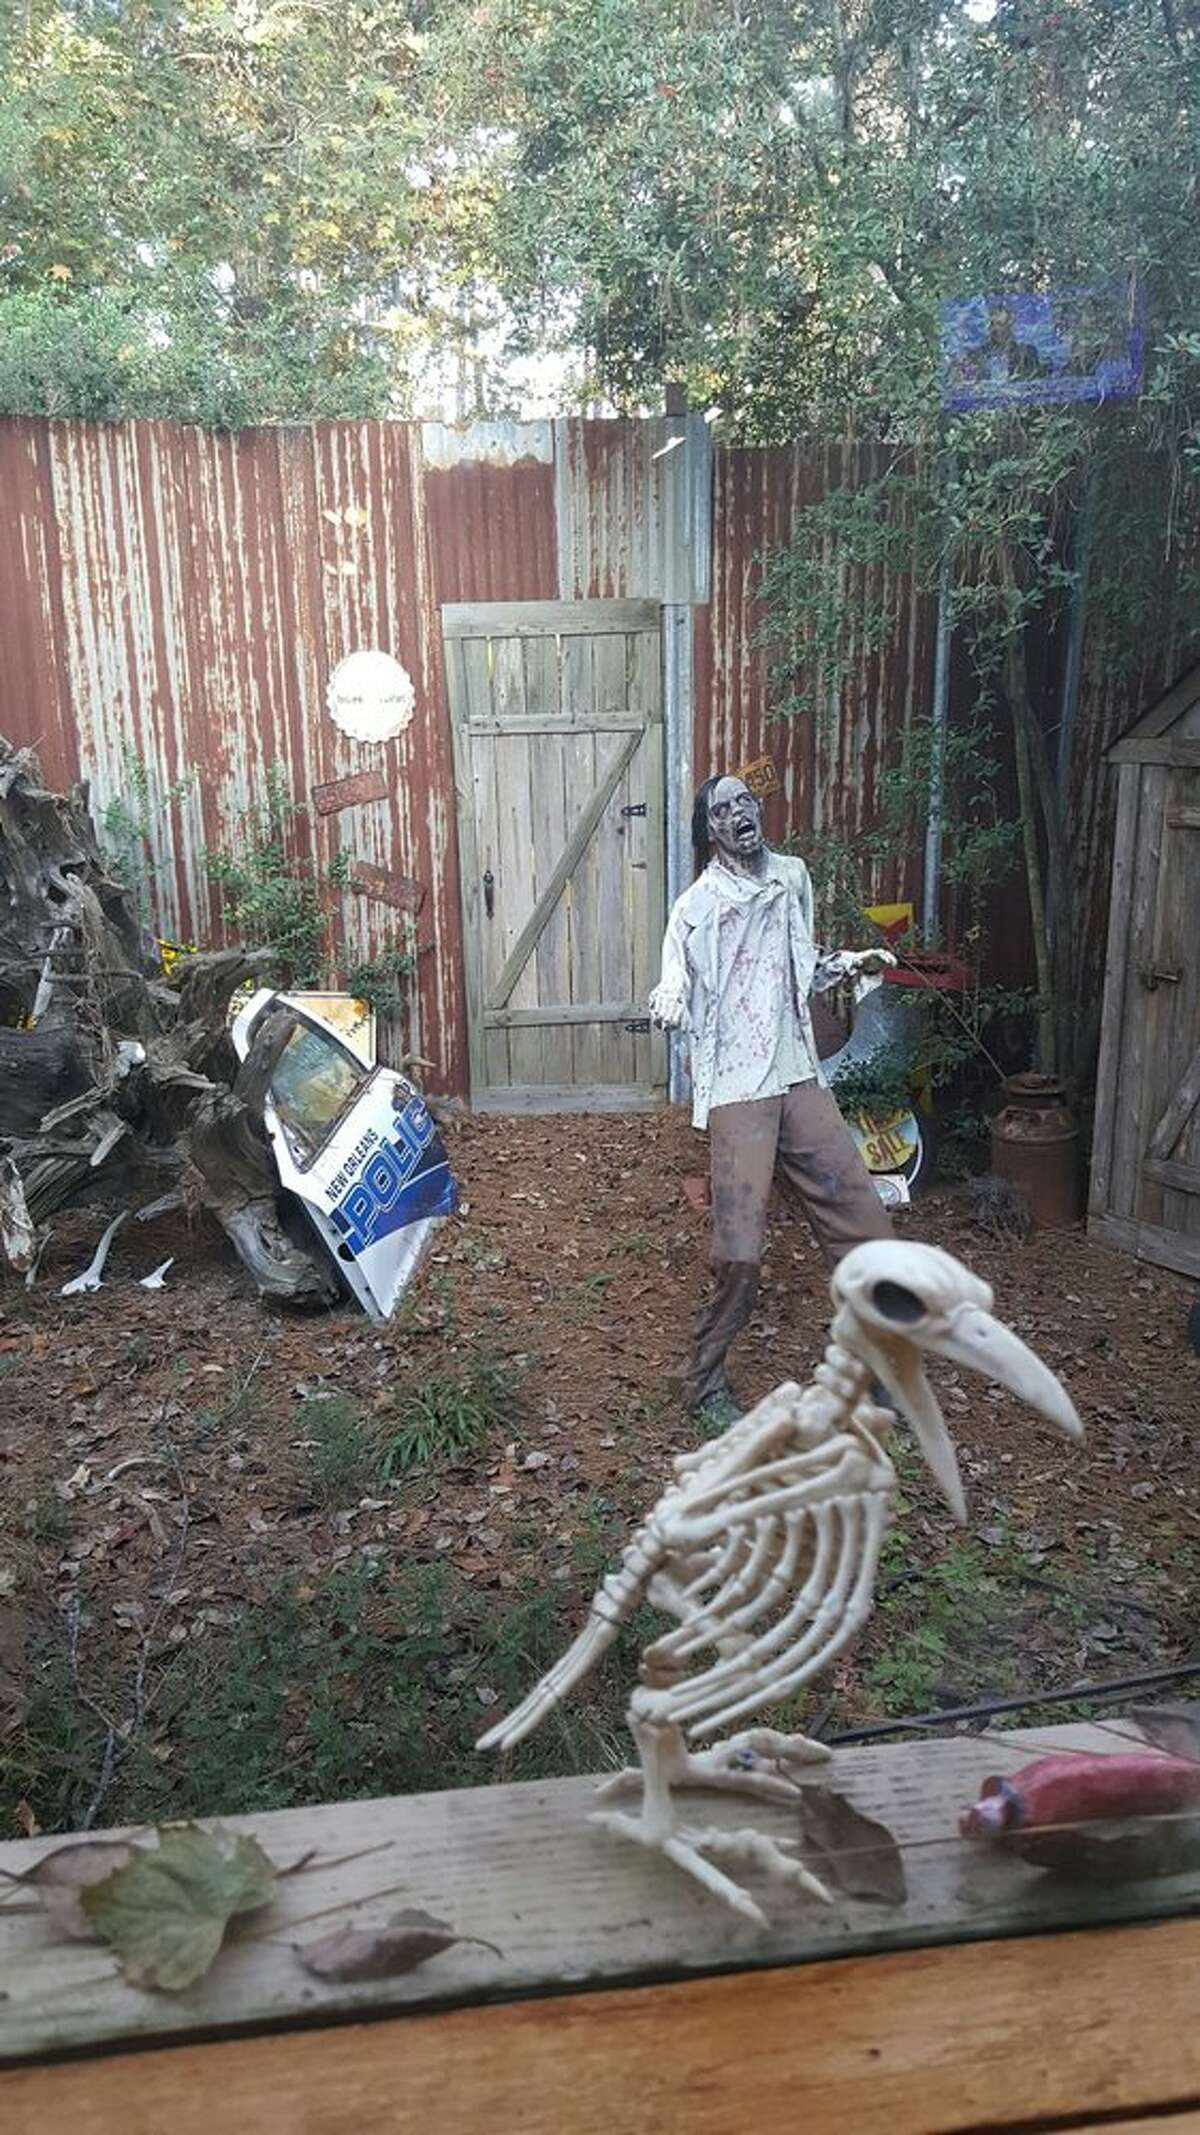 """Family Tree Recipe12202 FM 1488, MagnoliaYelp review by Jessica R: """"This place was really cool. It has a fun hillbilly/ zombie theme. The owners were really friendly. They have some of the tables set up with things they use to scare you. Pretty cool experience. We had a great time. Really different from any other restaurant I've ever been.""""Photo: Yelp/JC M"""